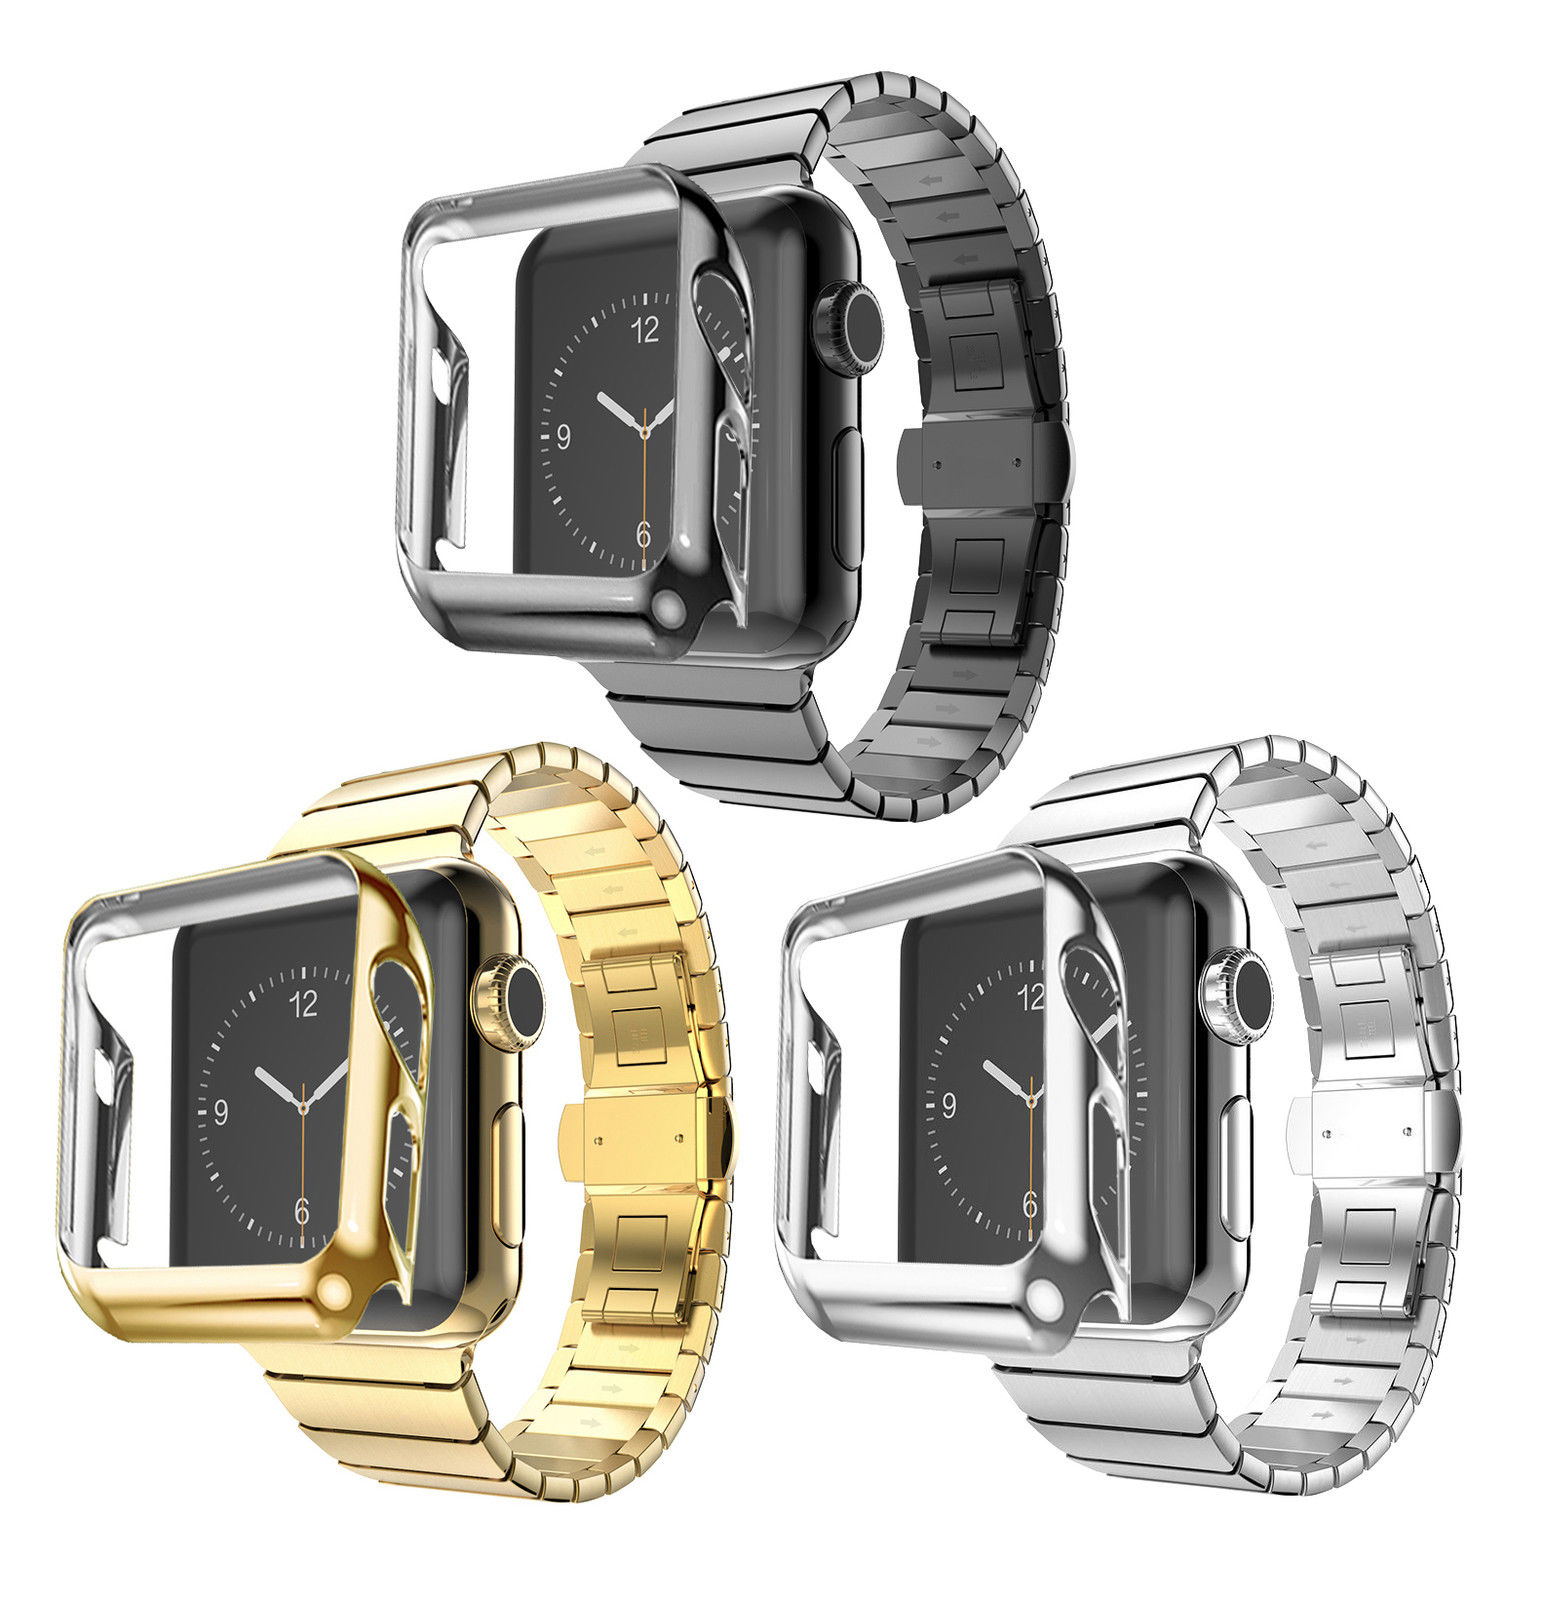 купить Butterfly Buckle Stainless Steel Link Strap For Apple Watch Band Gold Plating Cover Case For Series 2 iWatch 1st 2nd Bracelet недорого